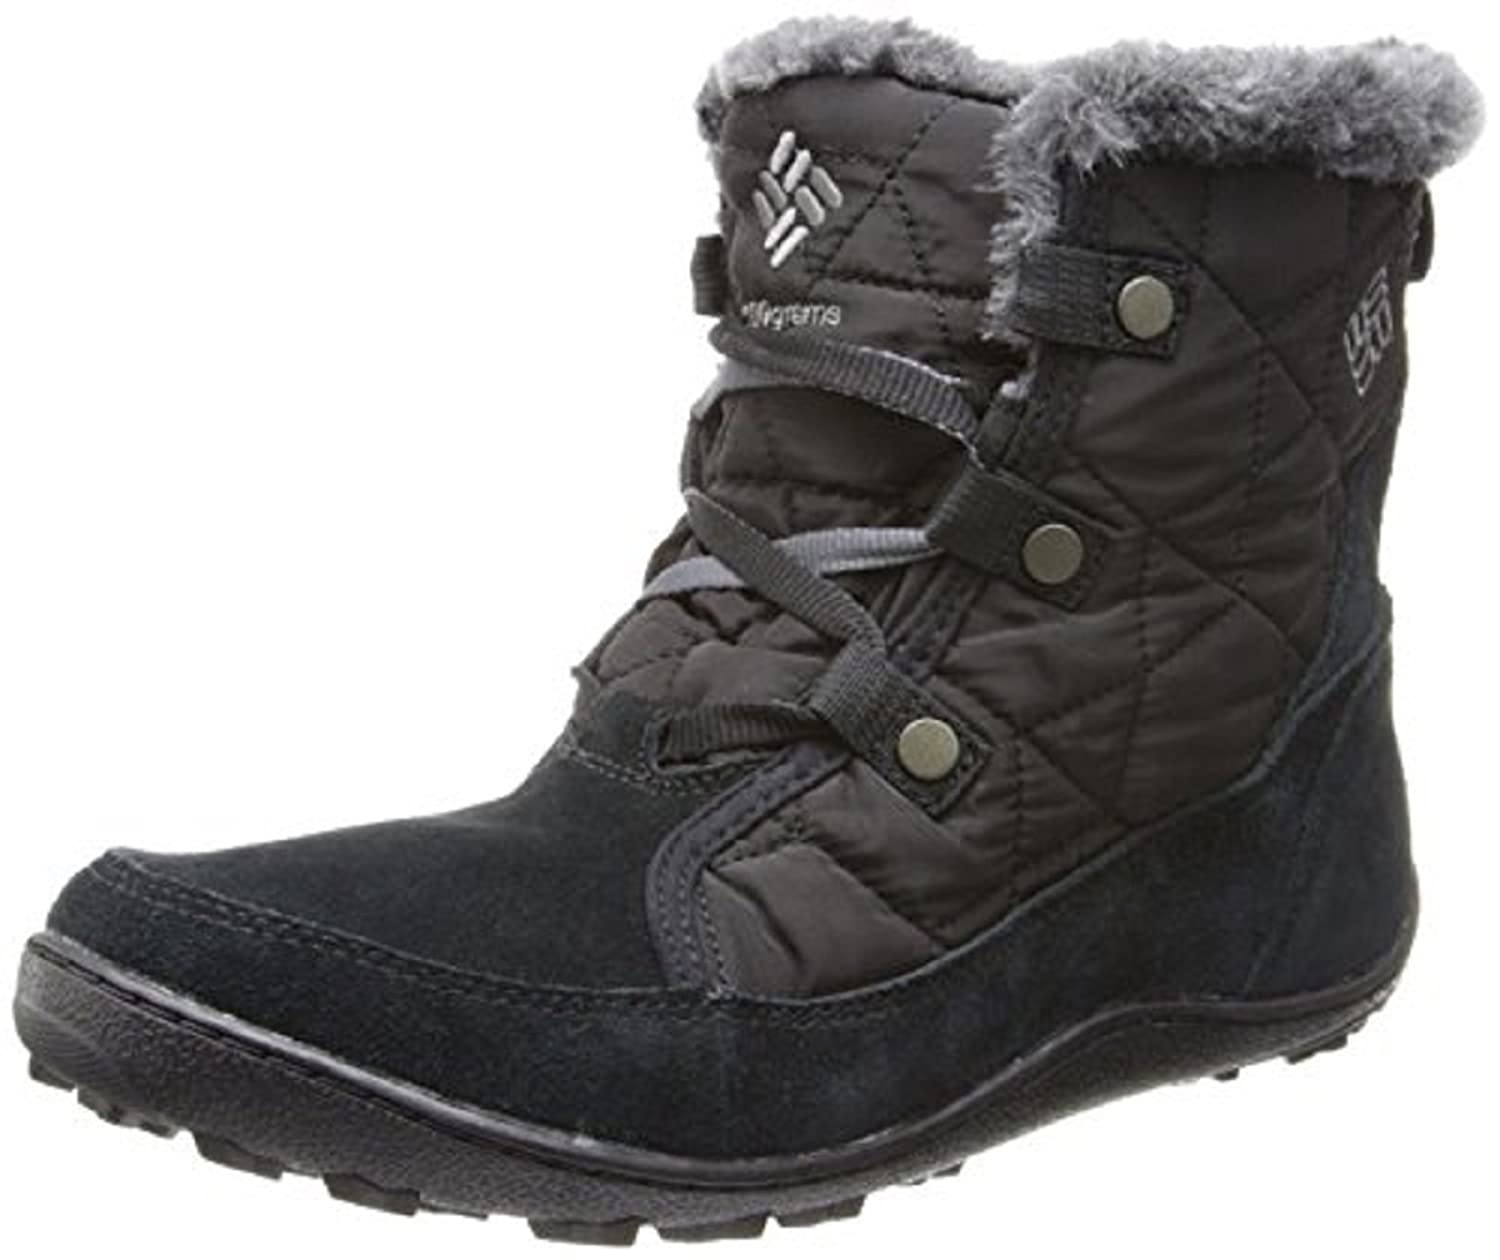 Columbia Women's Powder Summit Shorty Waterproof Boots Insulated Shoes B076L4939X 7.5 B(M) US